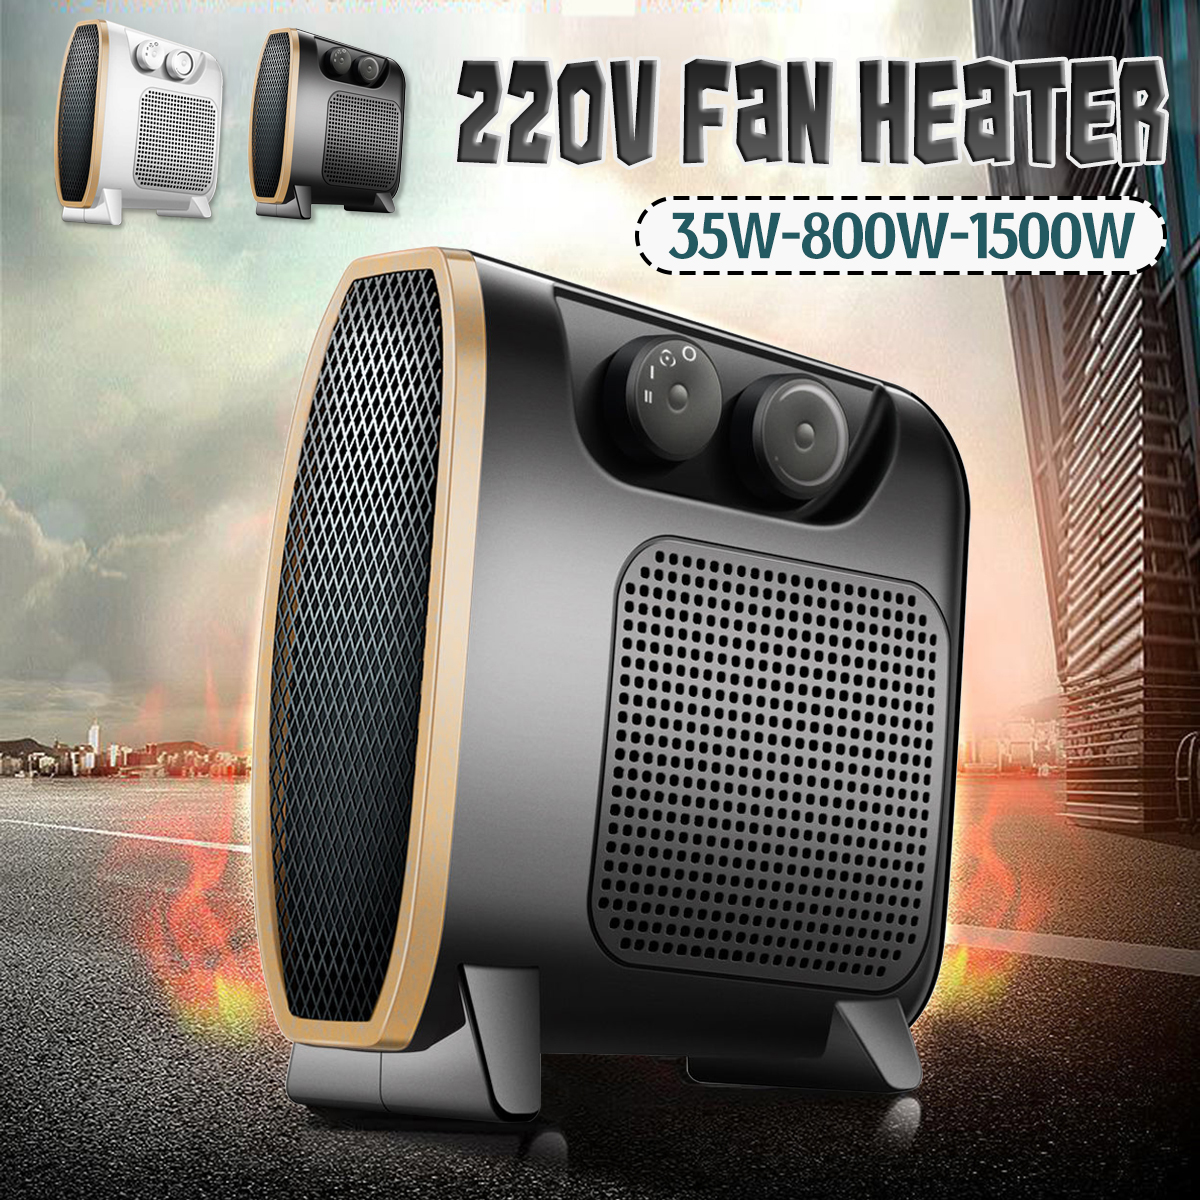 220V 35-800-1500W Electric Heater Mini Fan Heater Desktop Household Handy Heater Stove Radiator Warmer Machine For Winter cute mini fan heater desktop household electric heater fast handy heater warm machine for winter small desktop heater